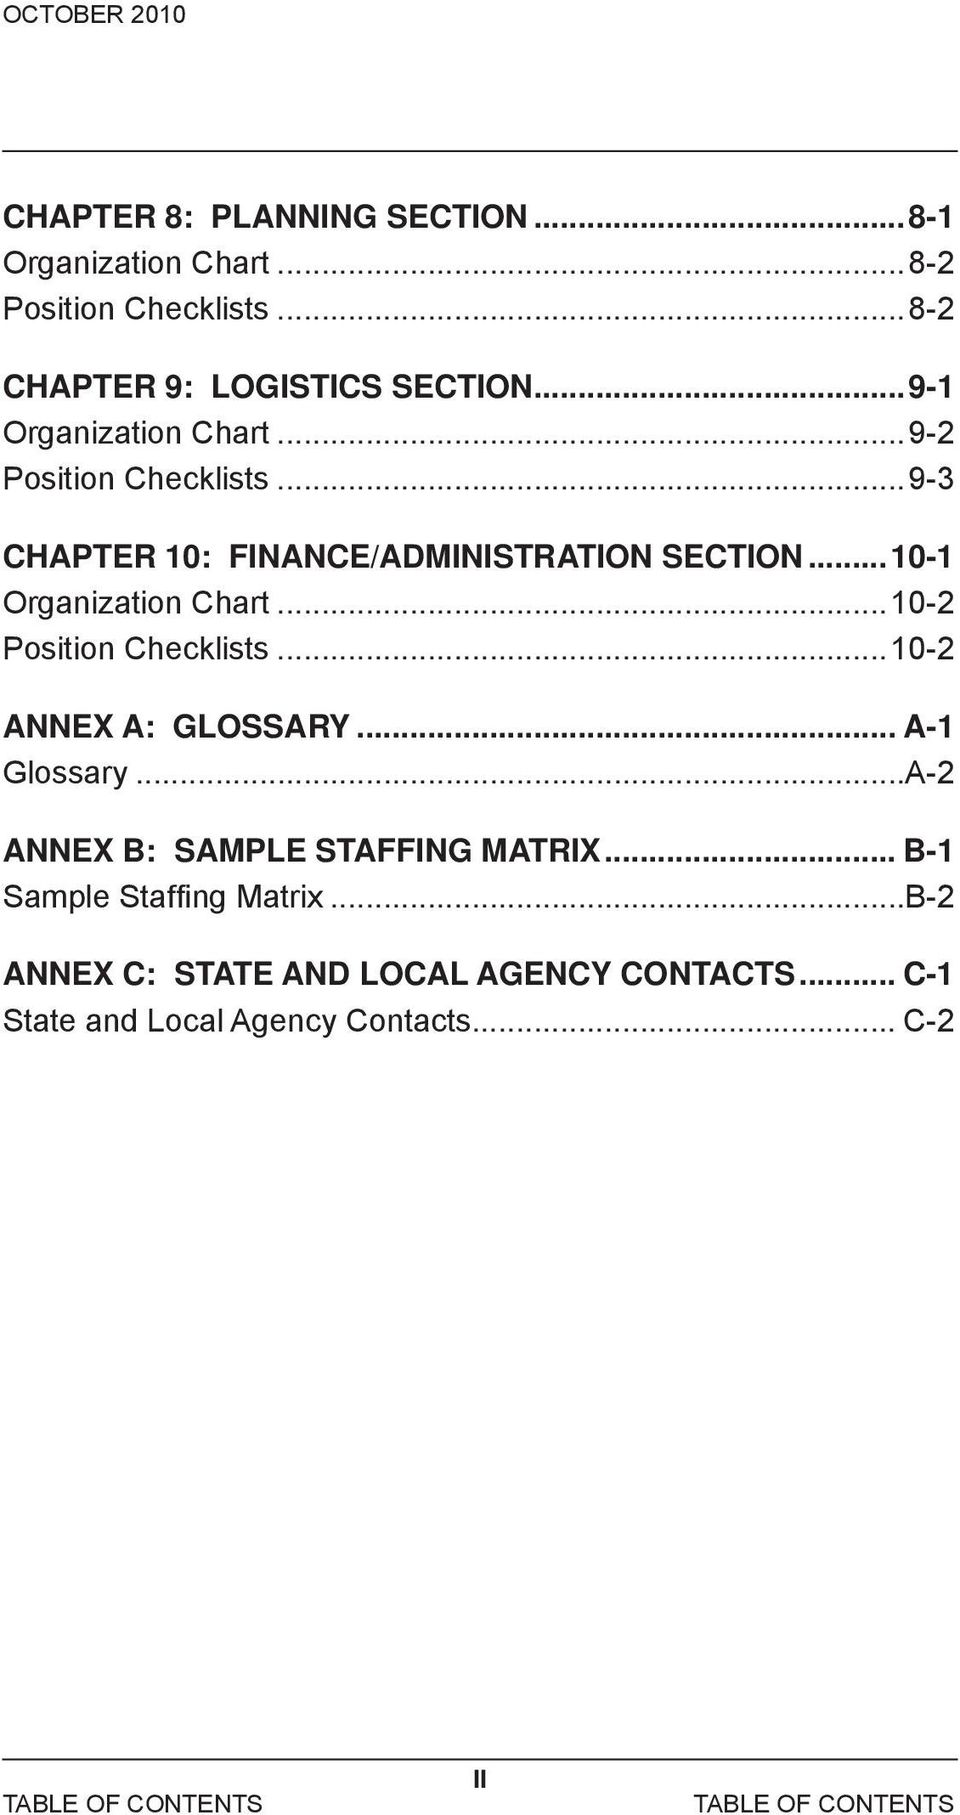 ..10-2 Position Checklists...10-2 ANNEX A: GLOSSARY... A-1 Glossary...A-2 ANNEX B: SAMPLE STAFFING MATRIX.